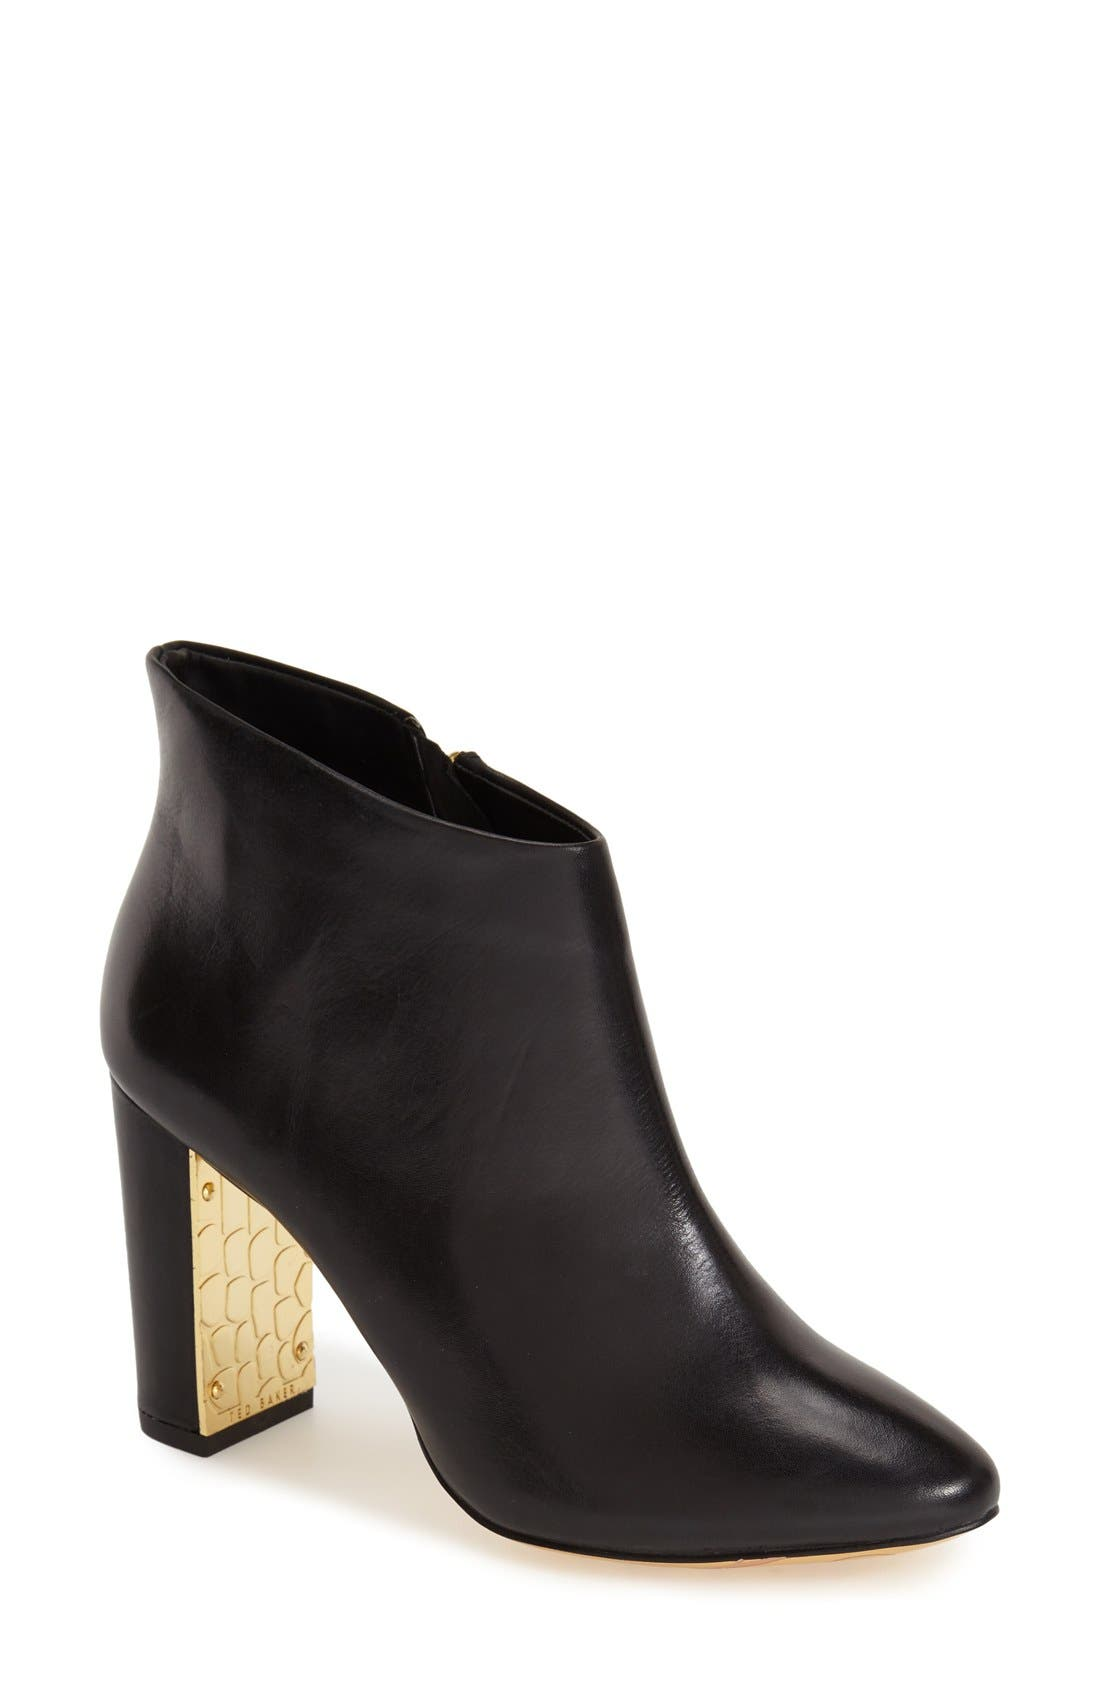 Main Image - Ted Baker London 'Lowrenna' Ankle Bootie (Women)